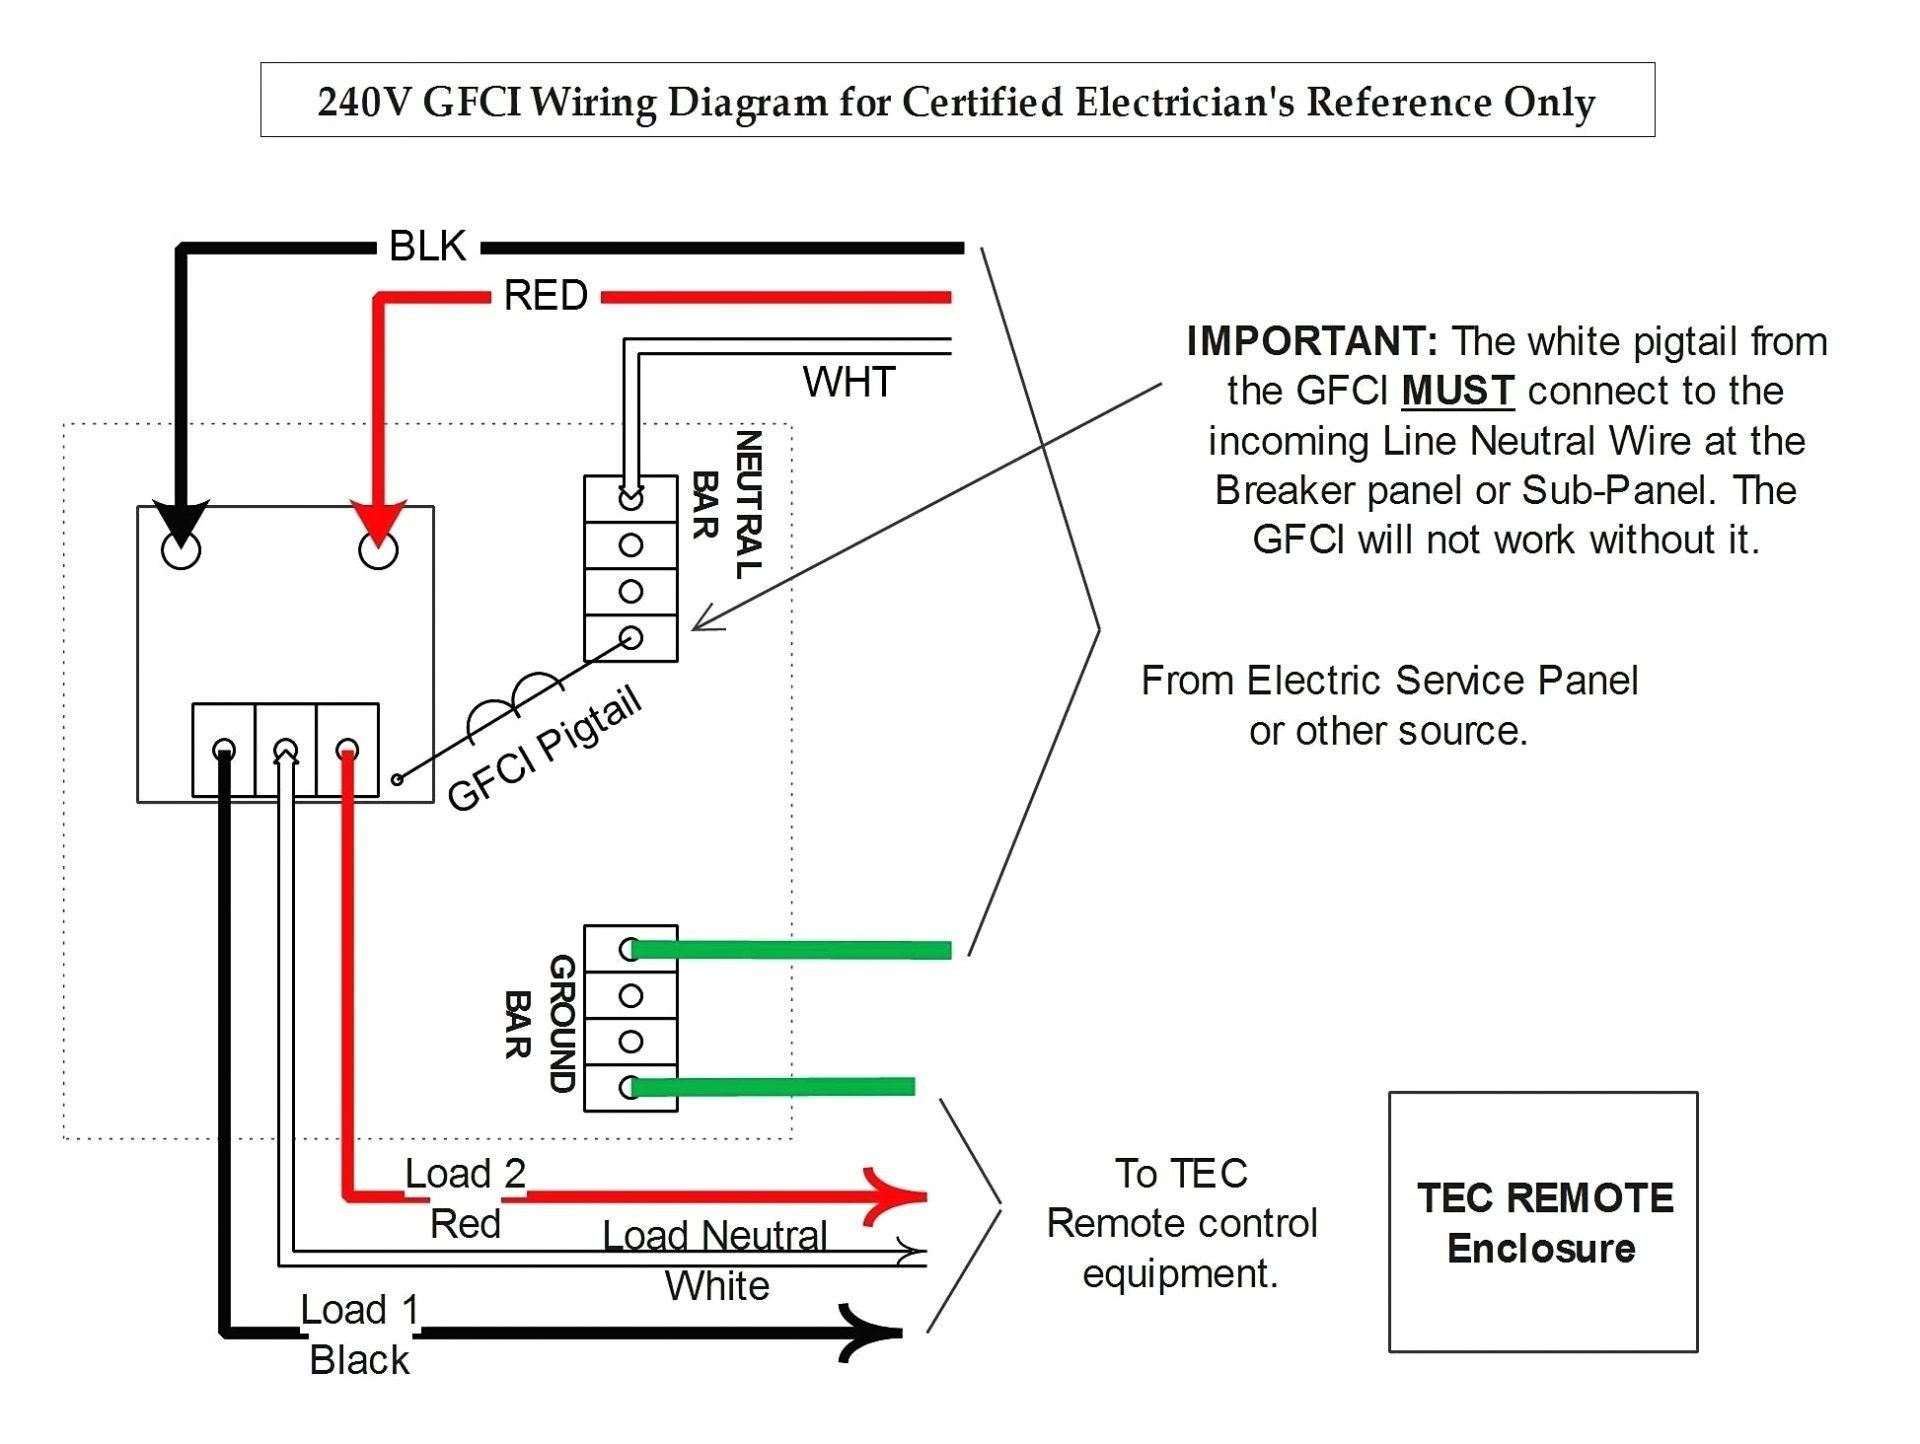 medium resolution of unique wiring diagram for extractor fan with timer diagram diagramsample diagramtemplate wiringdiagram diagramchart worksheet worksheettemplate